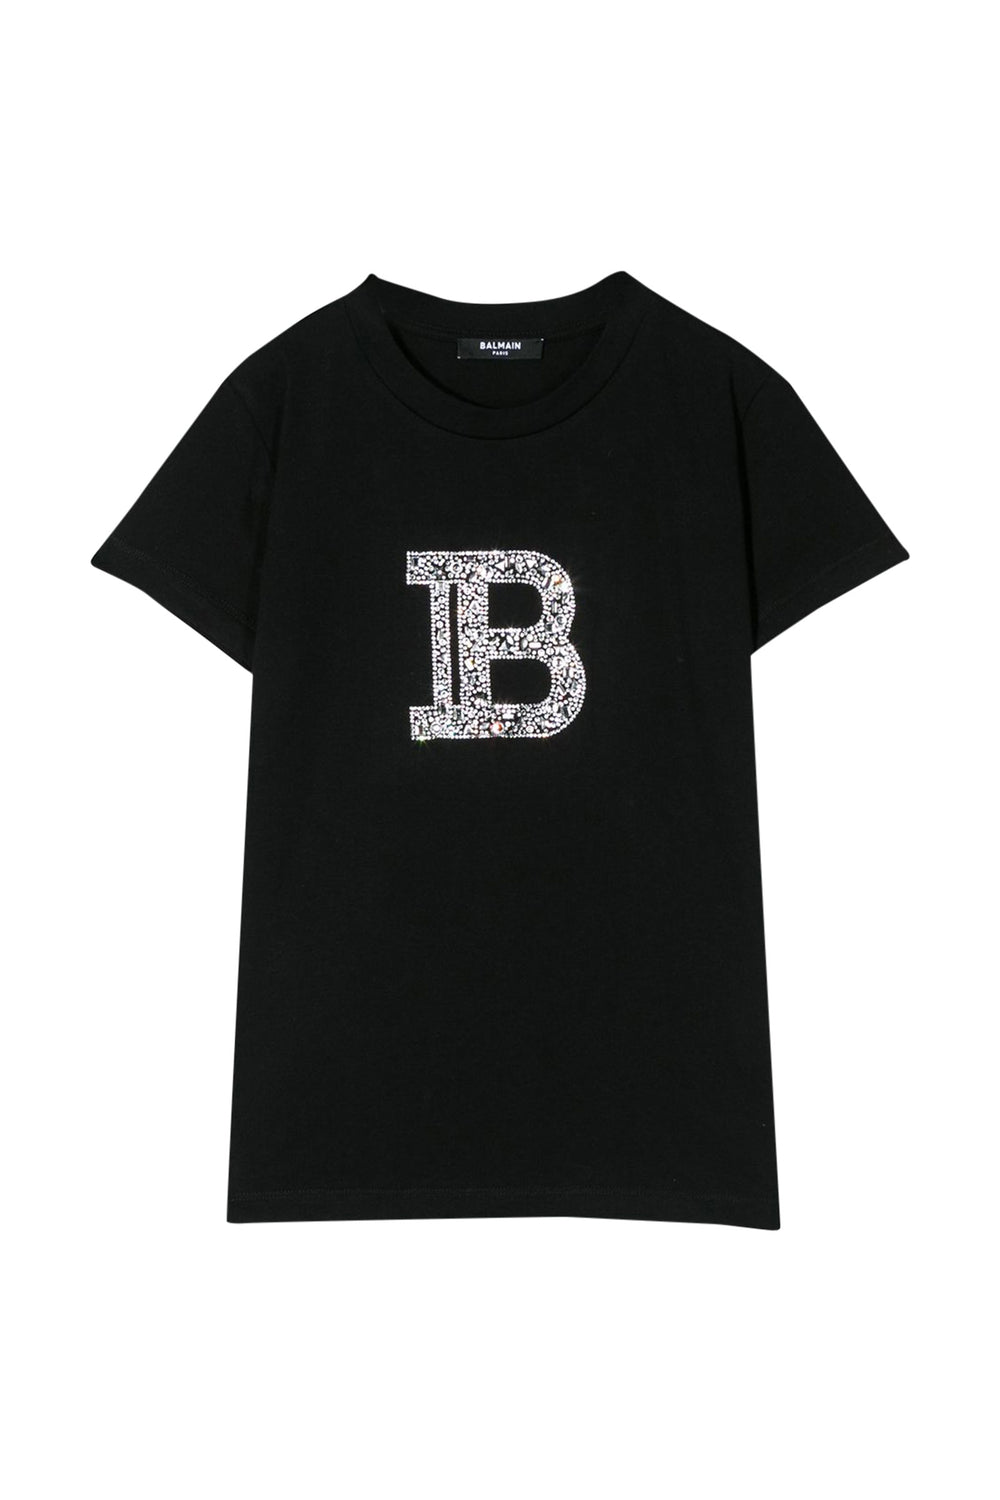 BALMAIN Black T-shirt With Decorative Logo